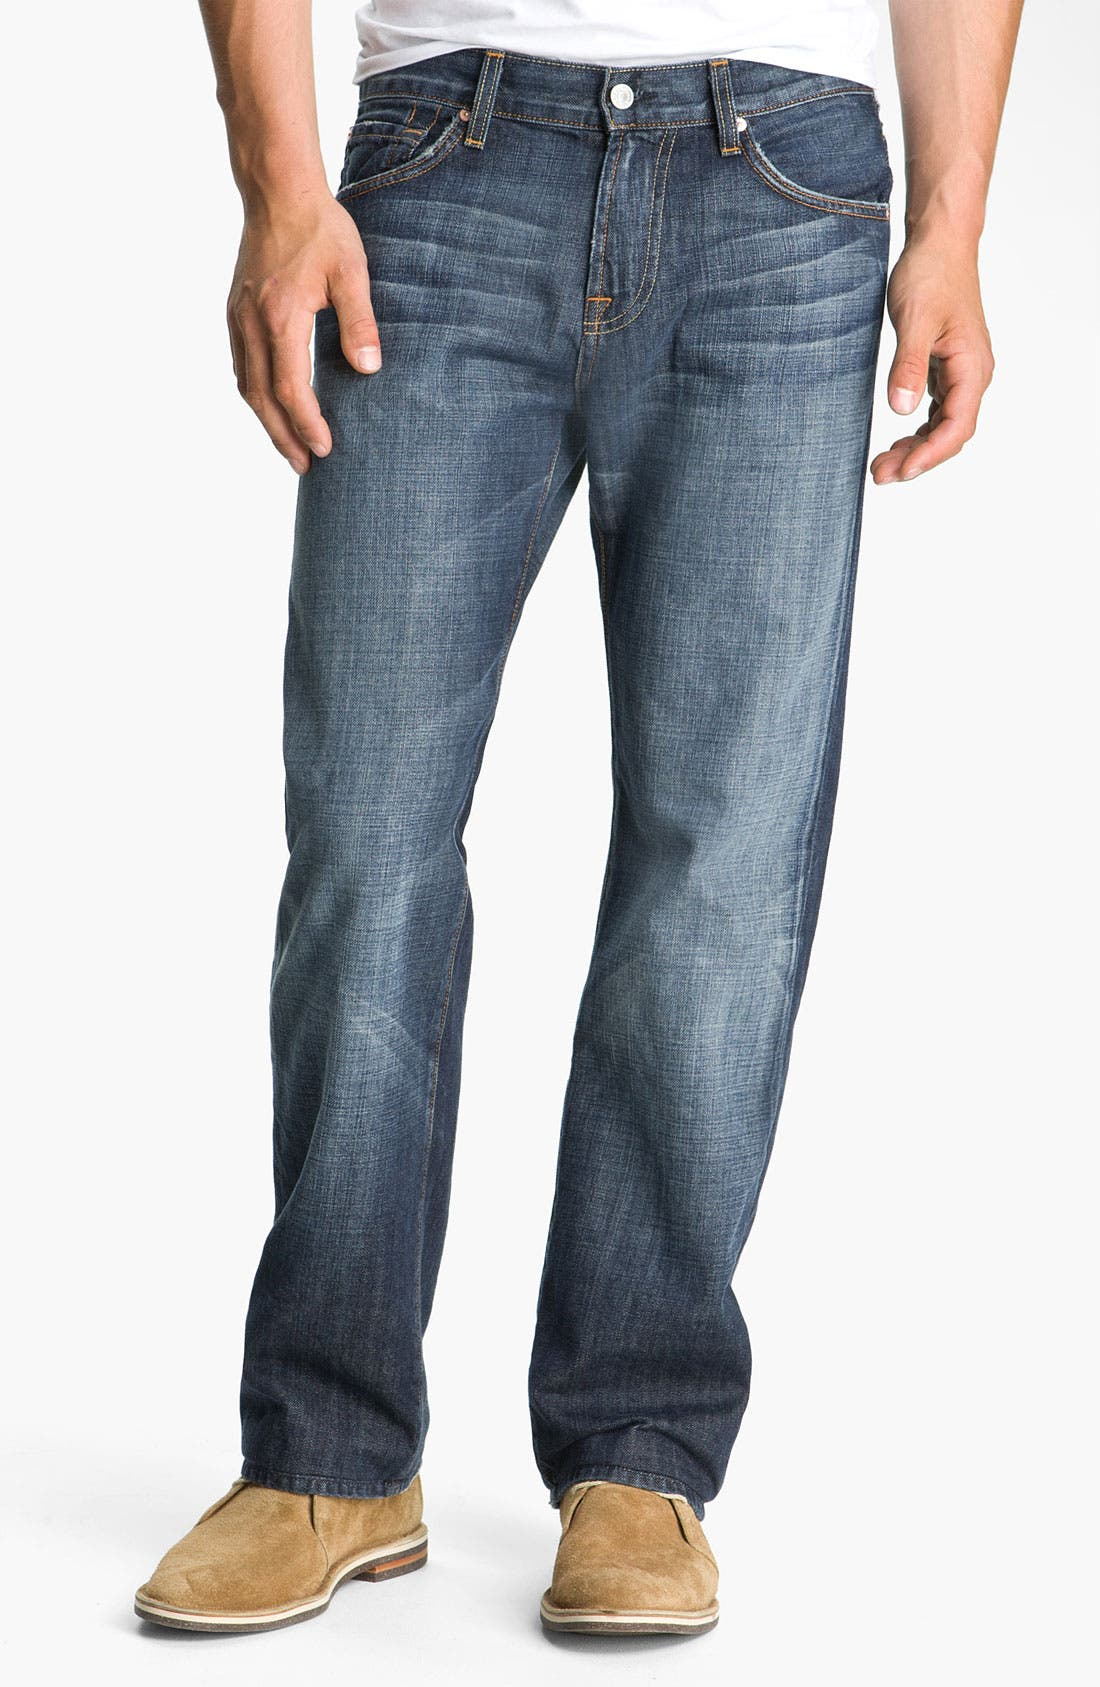 Alternate Image 1 Selected - 7 For All Mankind® 'Austyn' Relaxed Fit Jeans (New York Dark)